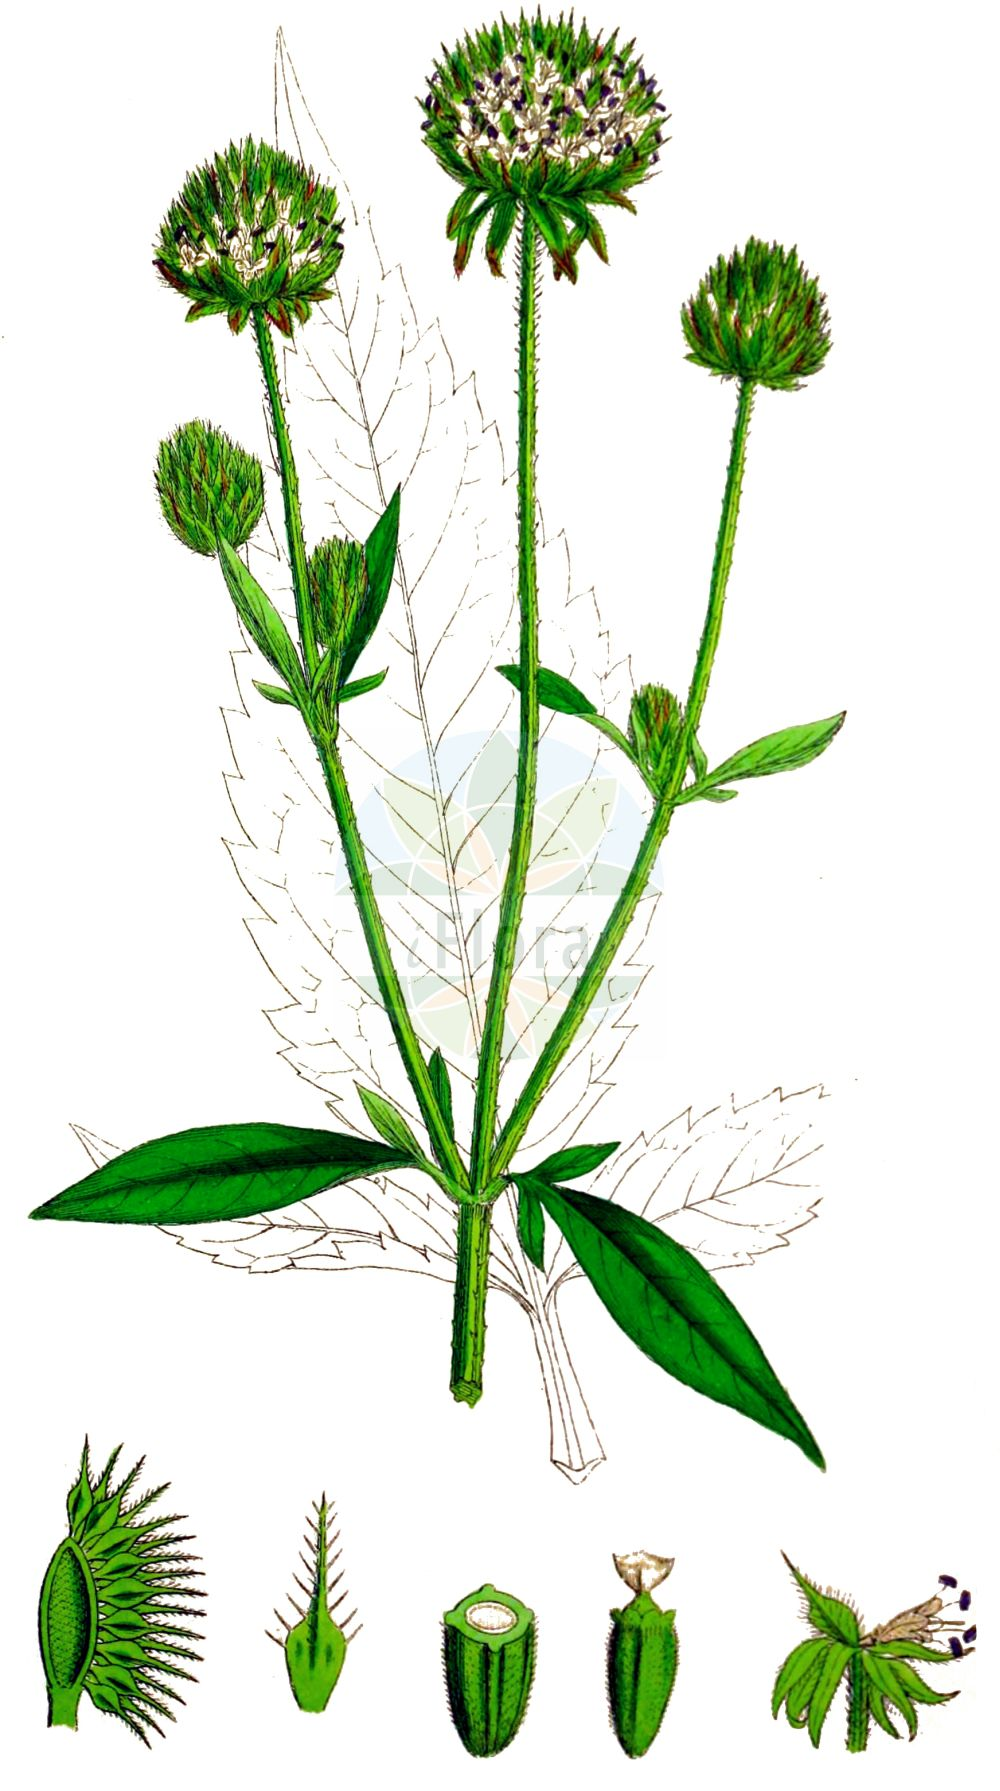 Historische Abbildung von Dipsacus pilosus (Behaarte Karde - Small Teasel). Das Bild zeigt Blatt, Bluete, Frucht und Same. ---- Historical Drawing of Dipsacus pilosus (Behaarte Karde - Small Teasel).The image is showing leaf, flower, fruit and seed.(Dipsacus pilosus,Behaarte Karde,Small Teasel,Cephalaria pilosa,Dipsacus pilosus,Virga pilosa,Behaarte Karde,Small Teasel,Dipsacus,Karde,Teasel,Caprifoliaceae,Geissblattgewaechse,Honeysuckle family,Blatt,Bluete,Frucht,Same,leaf,flower,fruit,seed,Sowerby (1790-1813))